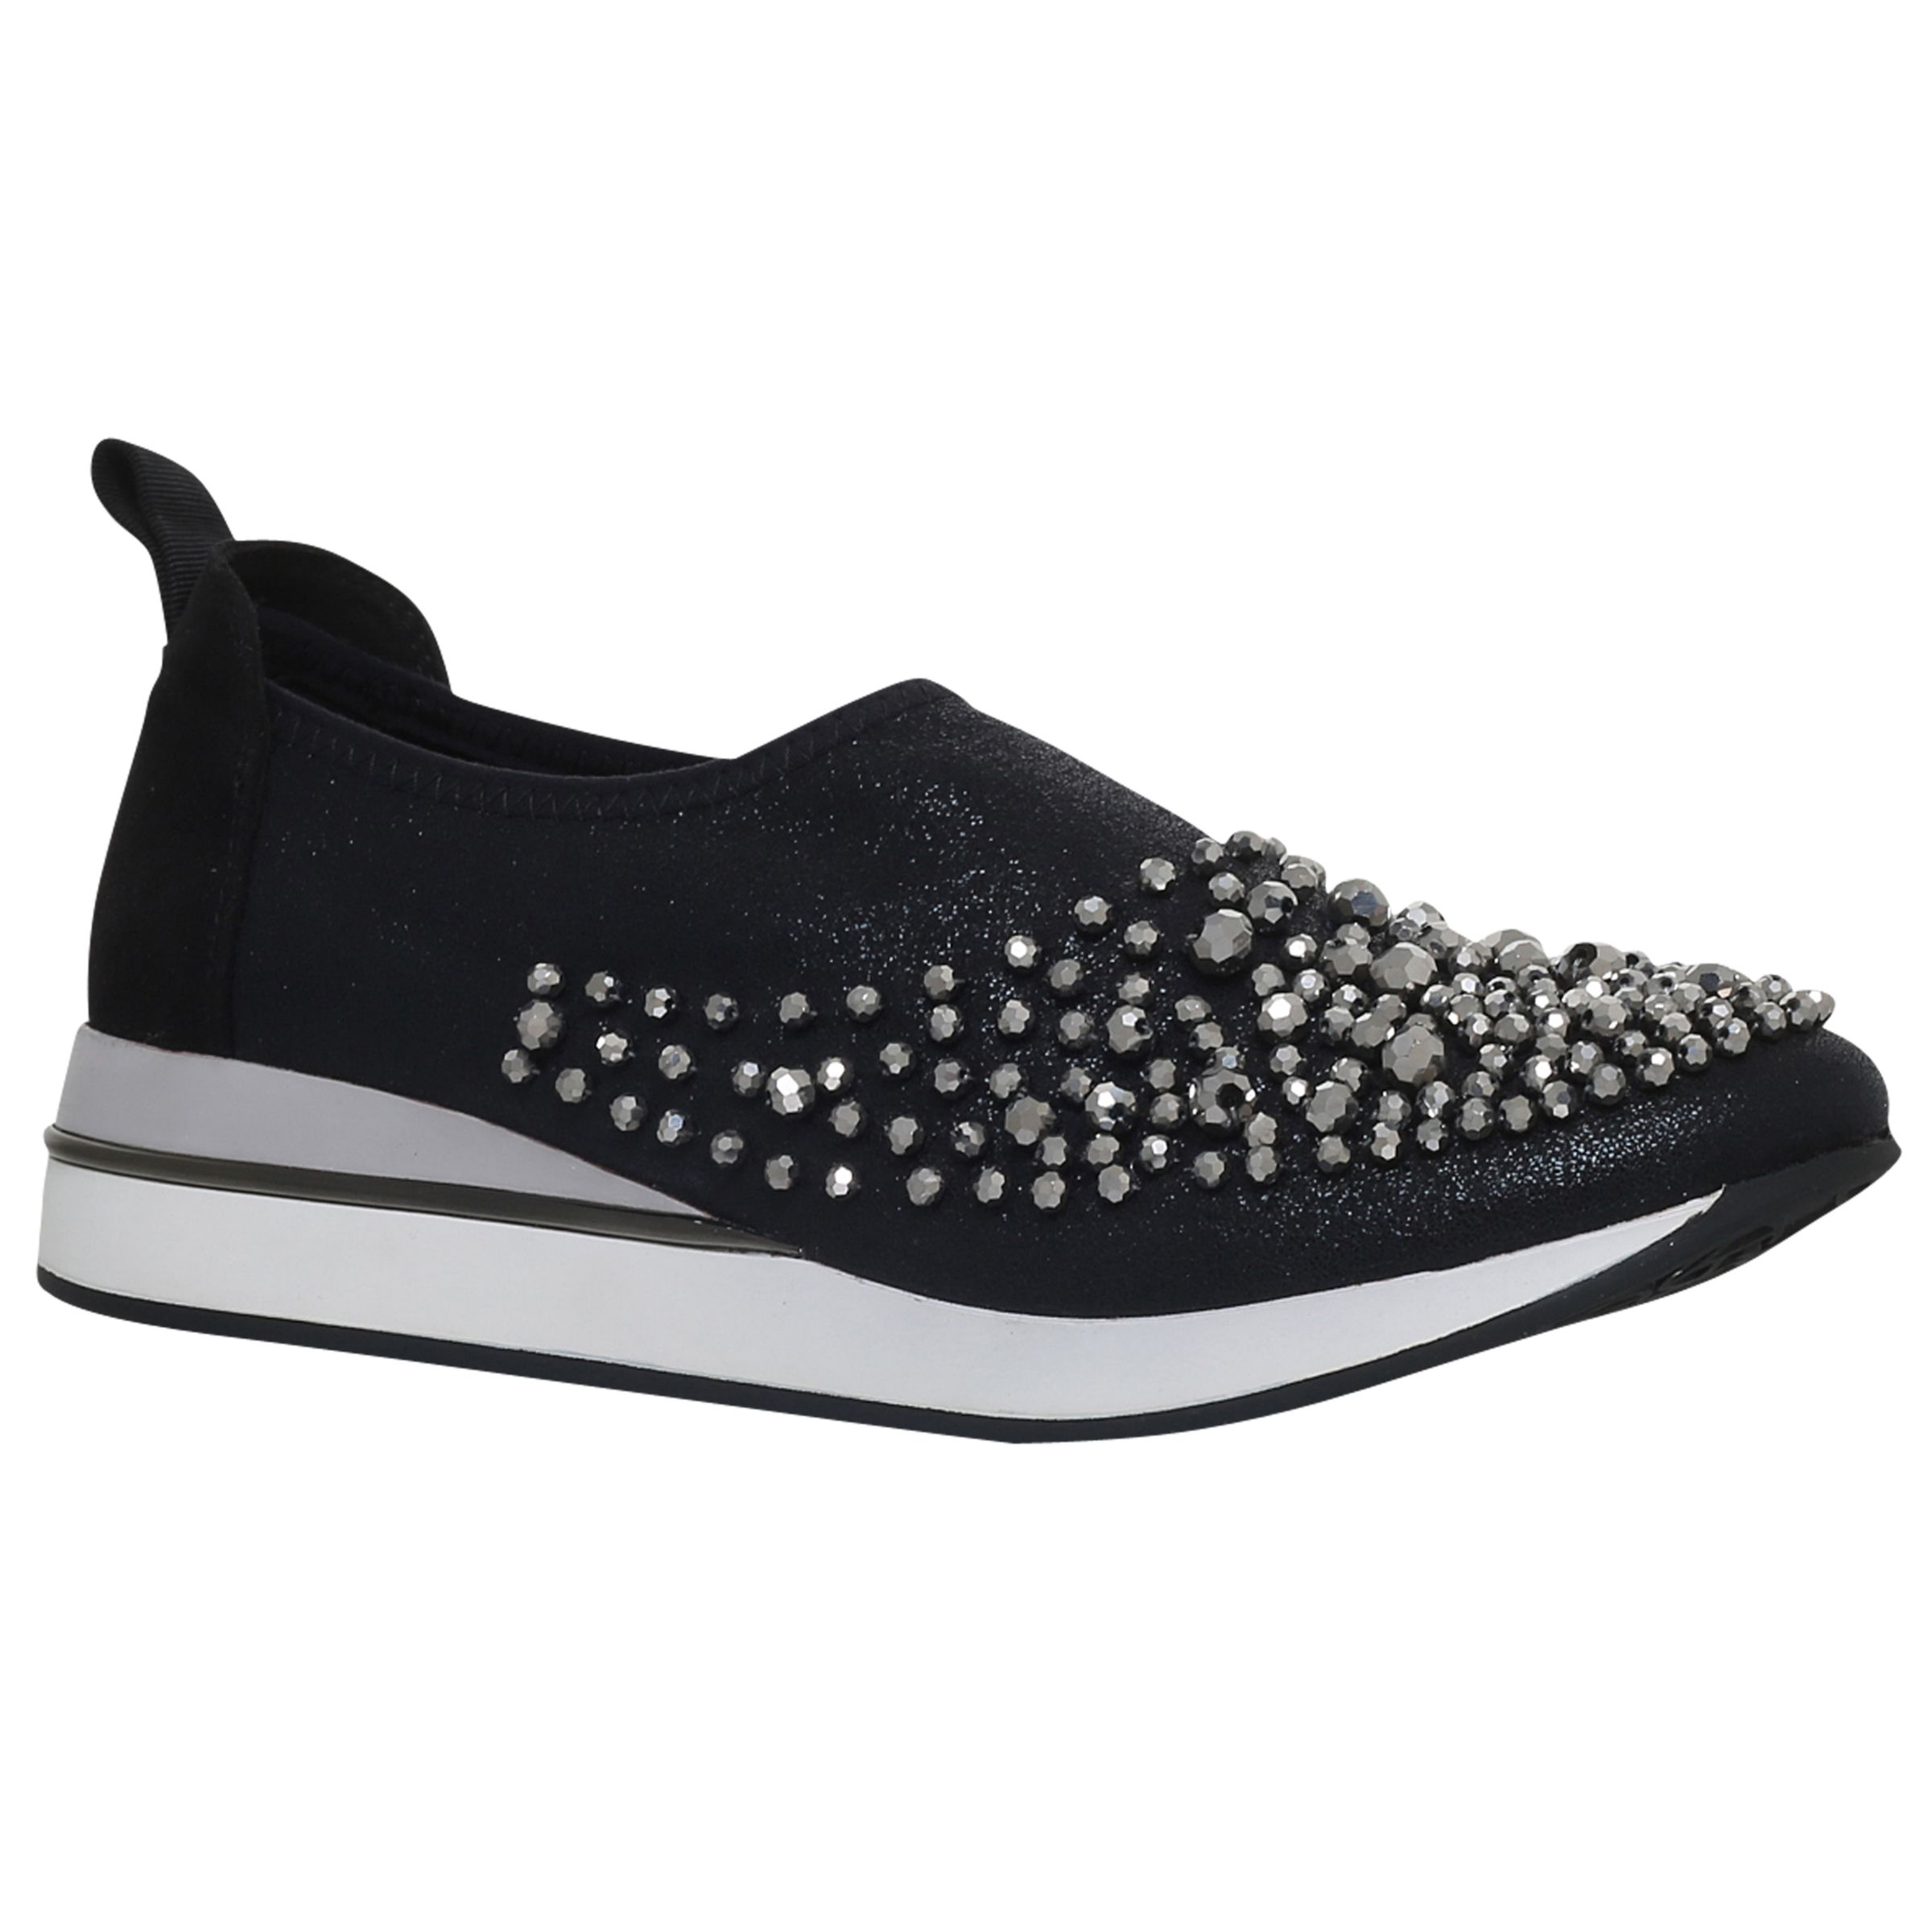 KG by Kurt Geiger KG by Kurt Geiger Opheila Slip On Trainers